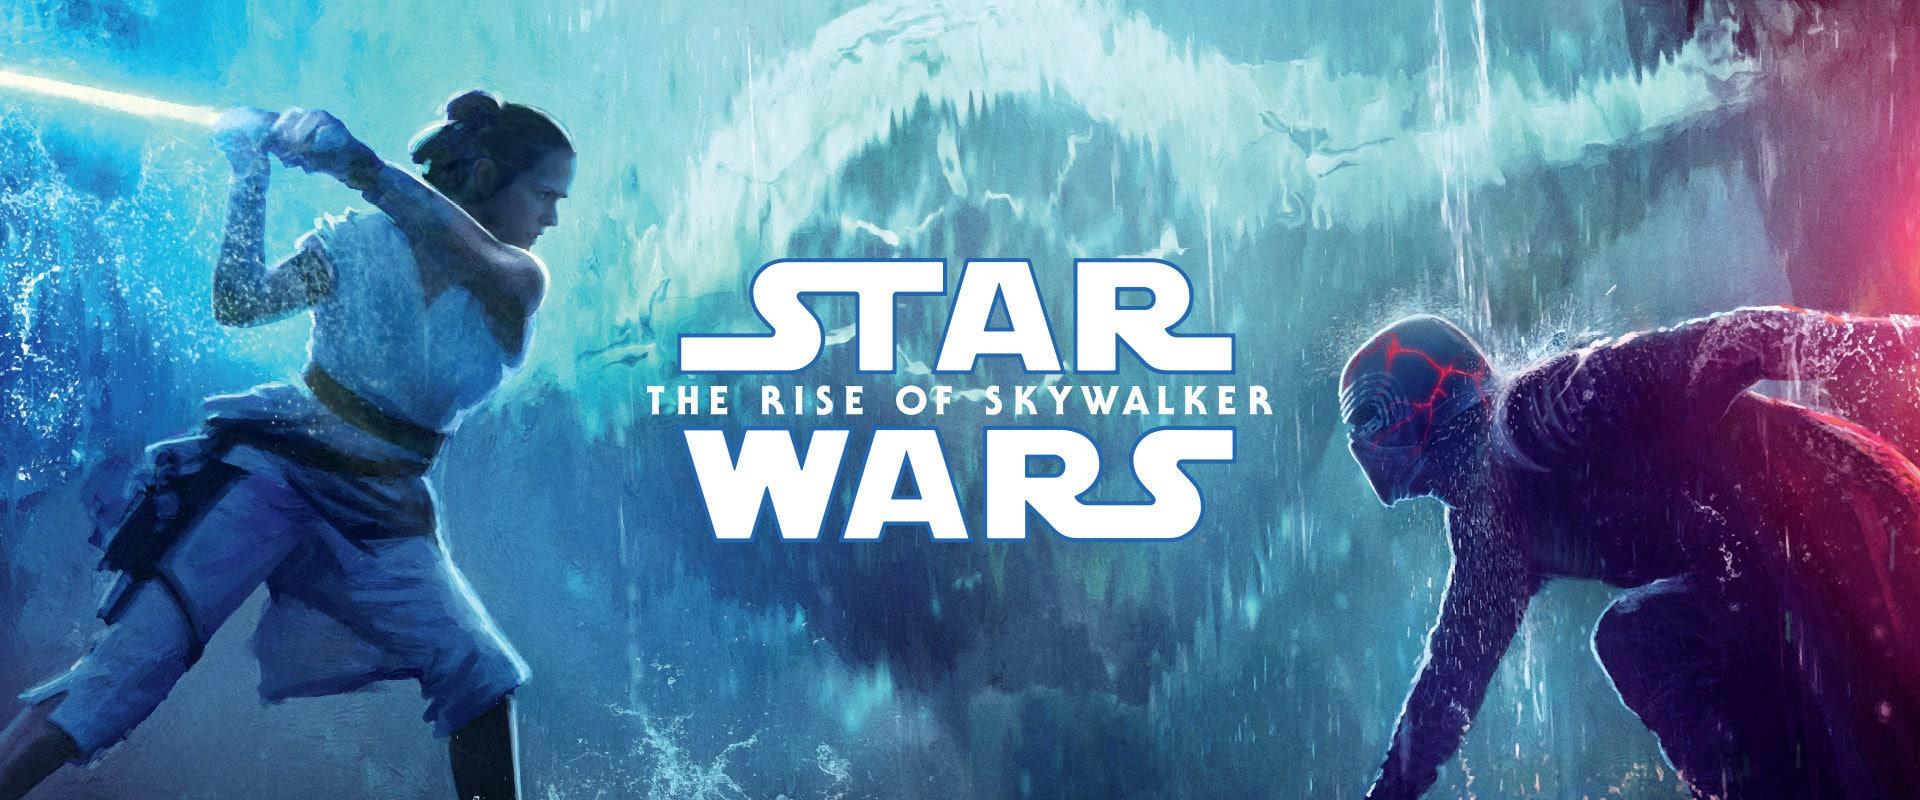 Star Wars: The Rise of Skywalker - In Home - Homepage EMEA Banner